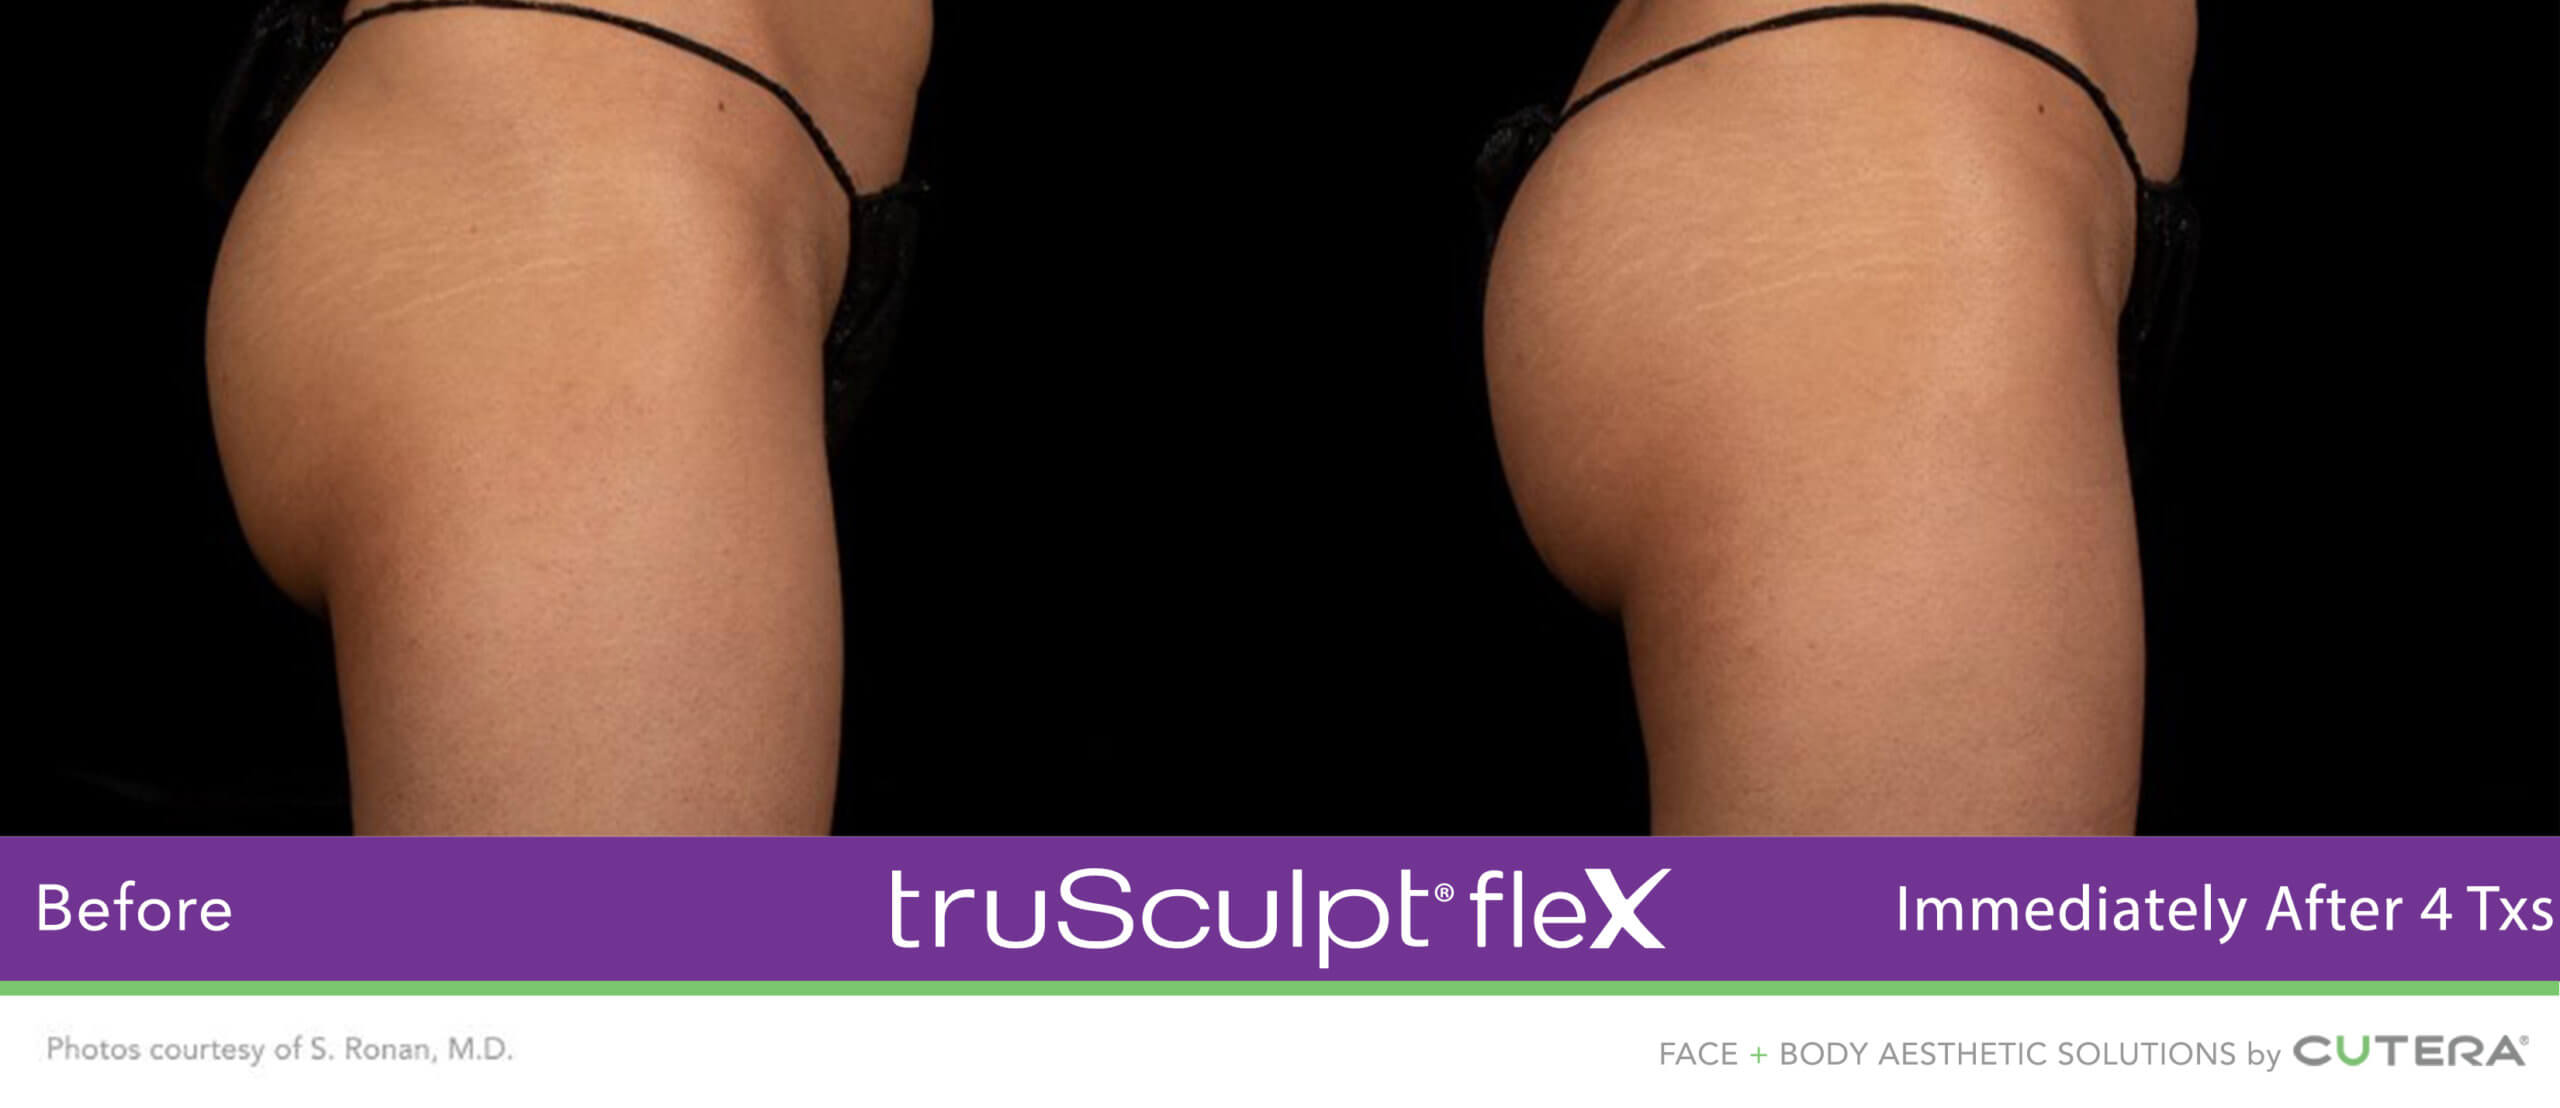 Muscle Sculpting Before and After on the glutes using truSculpt fleX